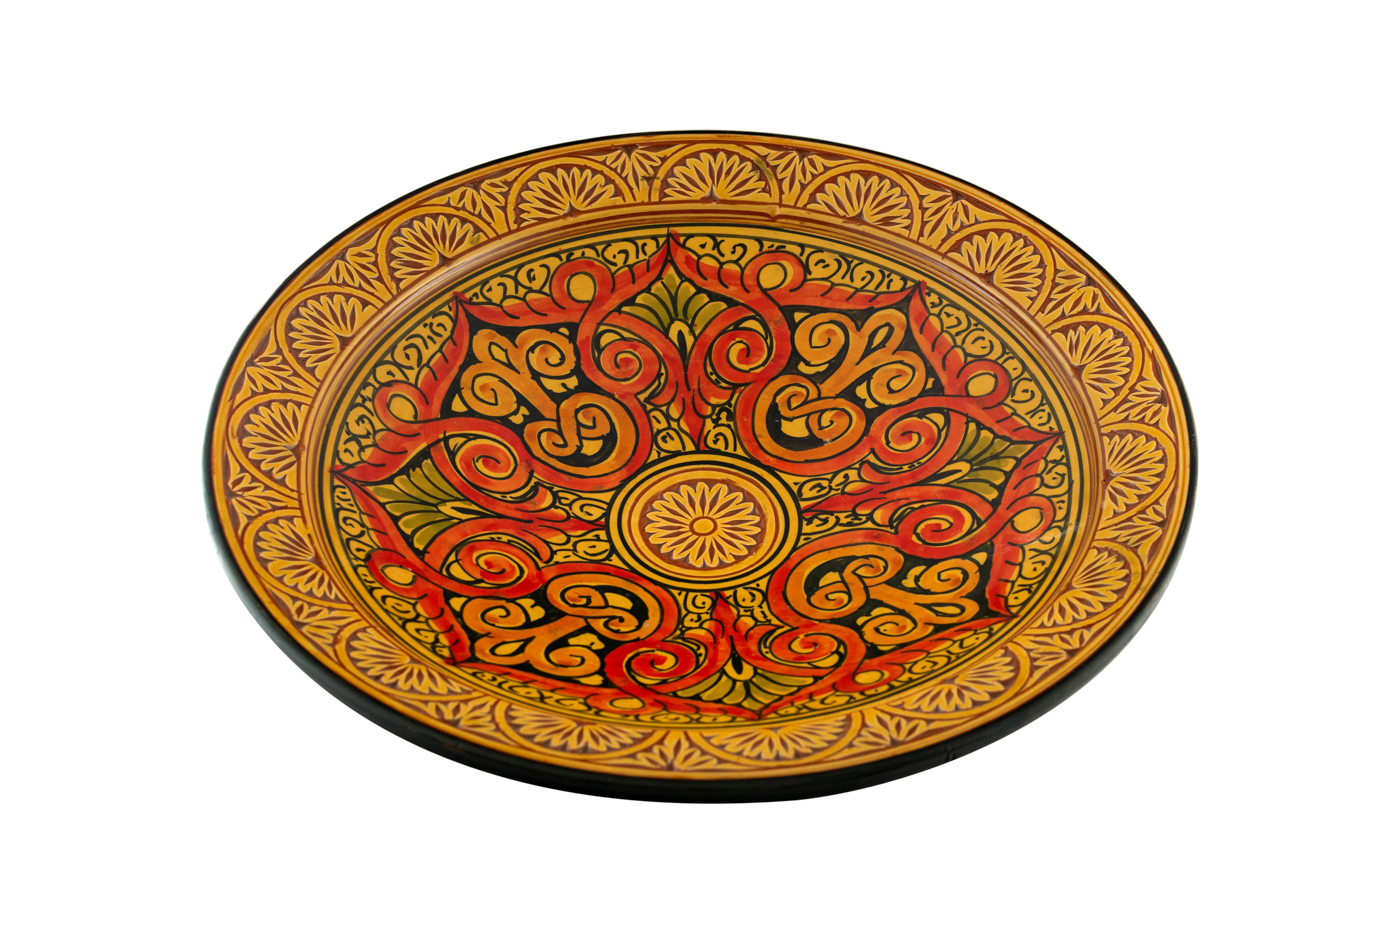 Moroccan ceramic plate carved with geometric arabesque designs-Orange/Yellow